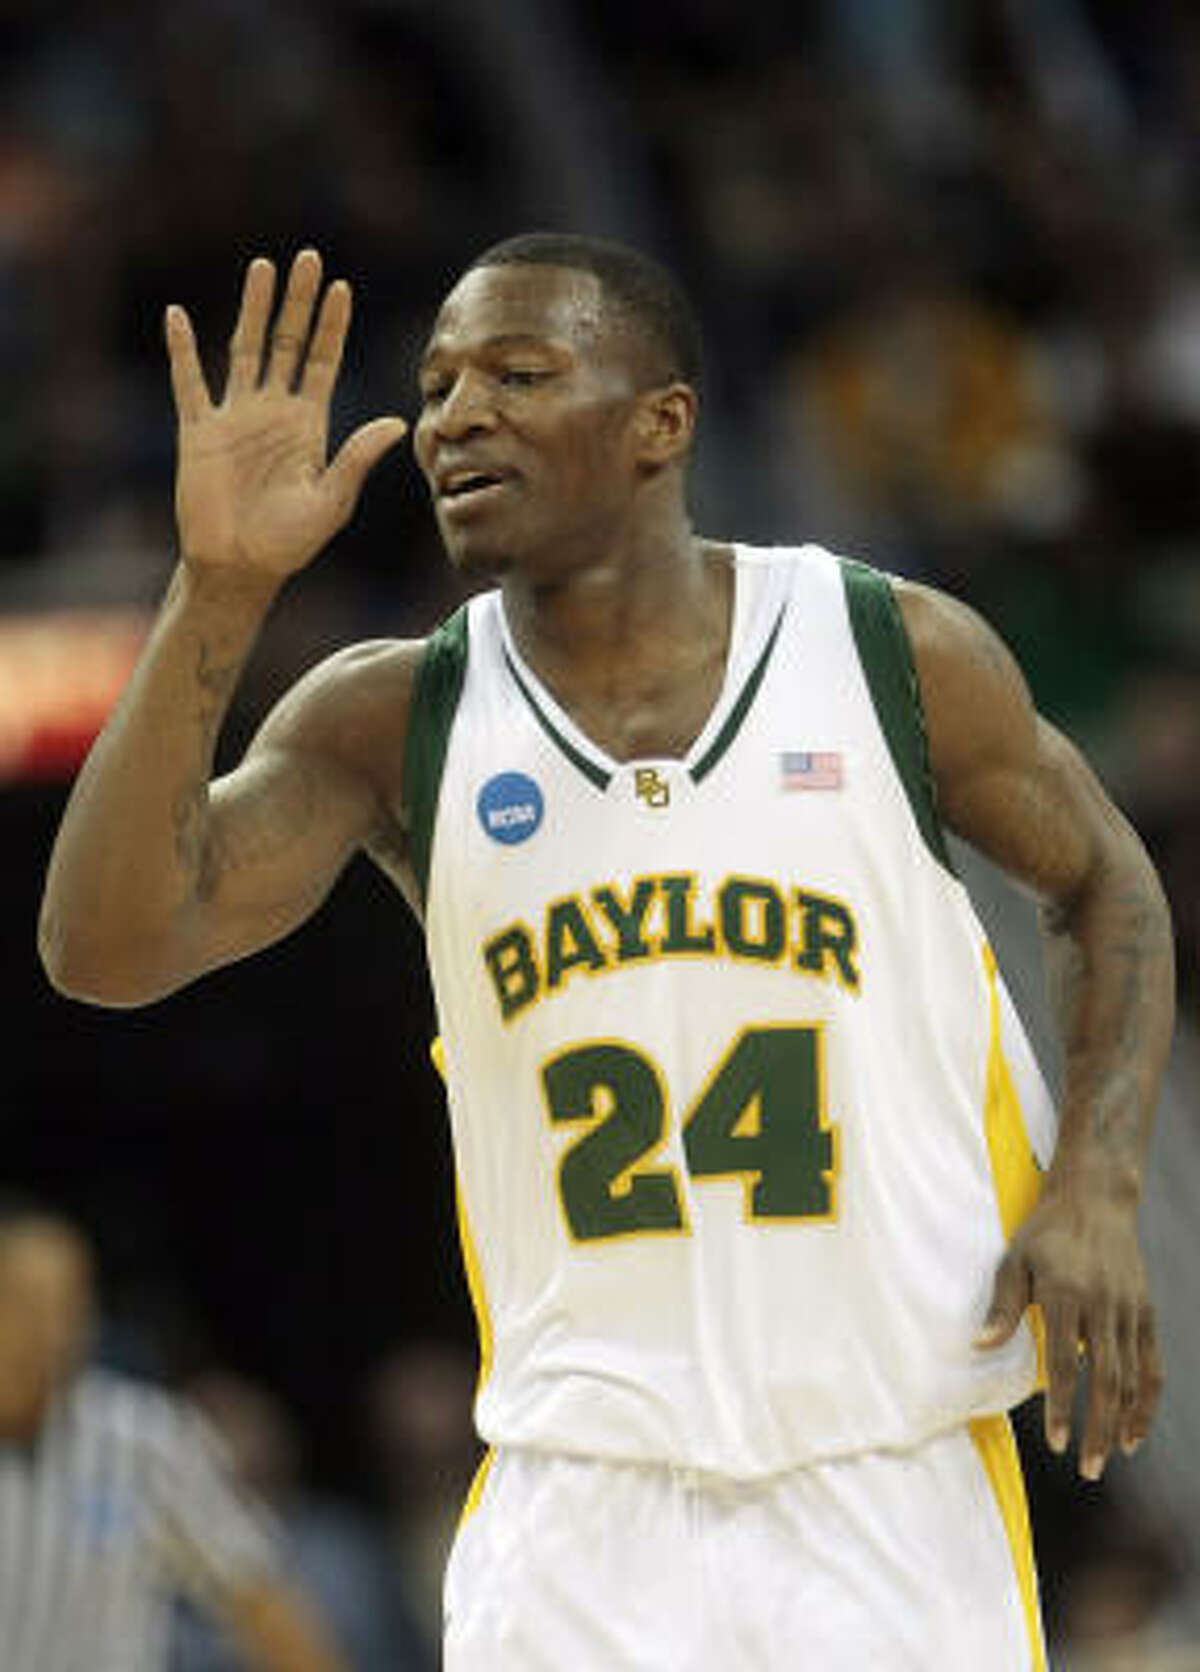 Baylor guard LaceDarius Dunn scored a game-high 26 points.